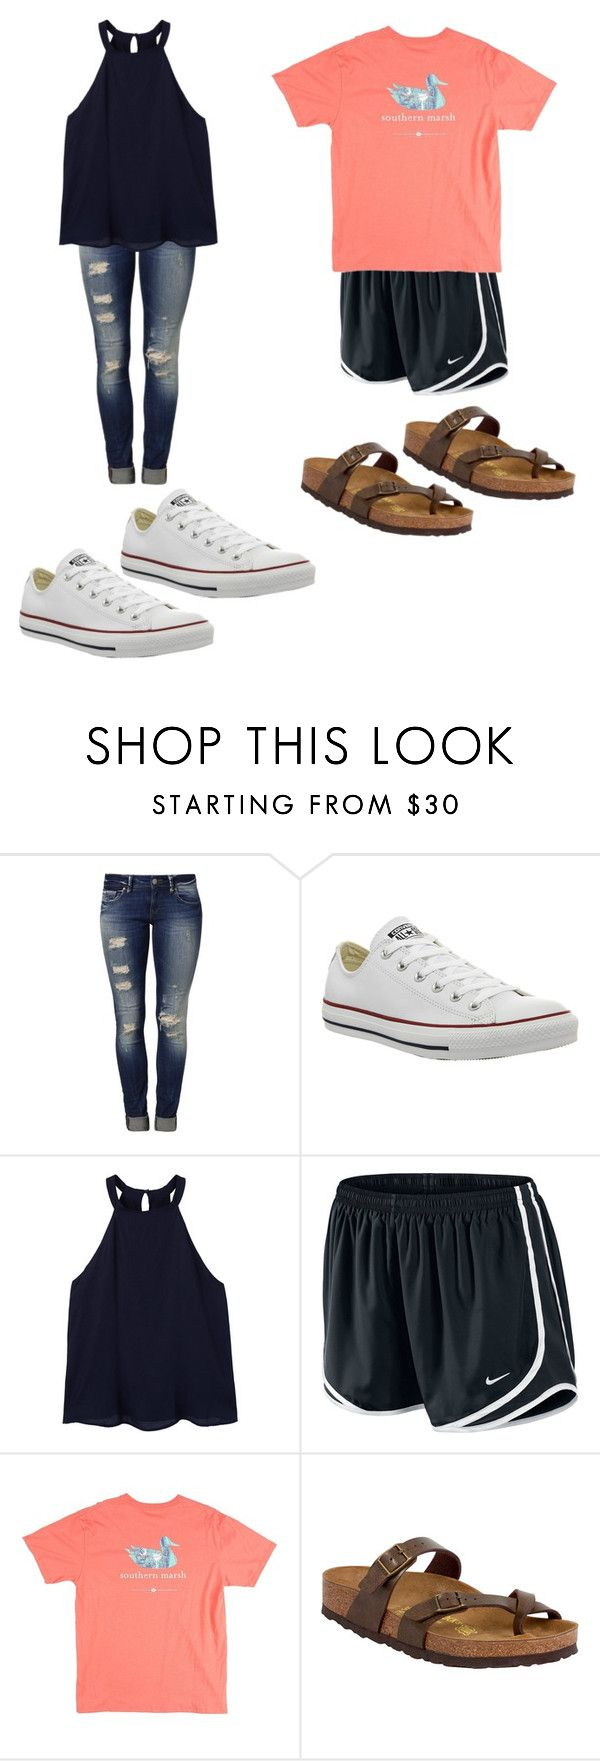 """Every Basic Girl at the Back To School Church Function 😂😂😂"" by blessing2002 ❤ liked on Polyvore featuring Mavi, Converse, MANGO, NIKE and Birkenstock"